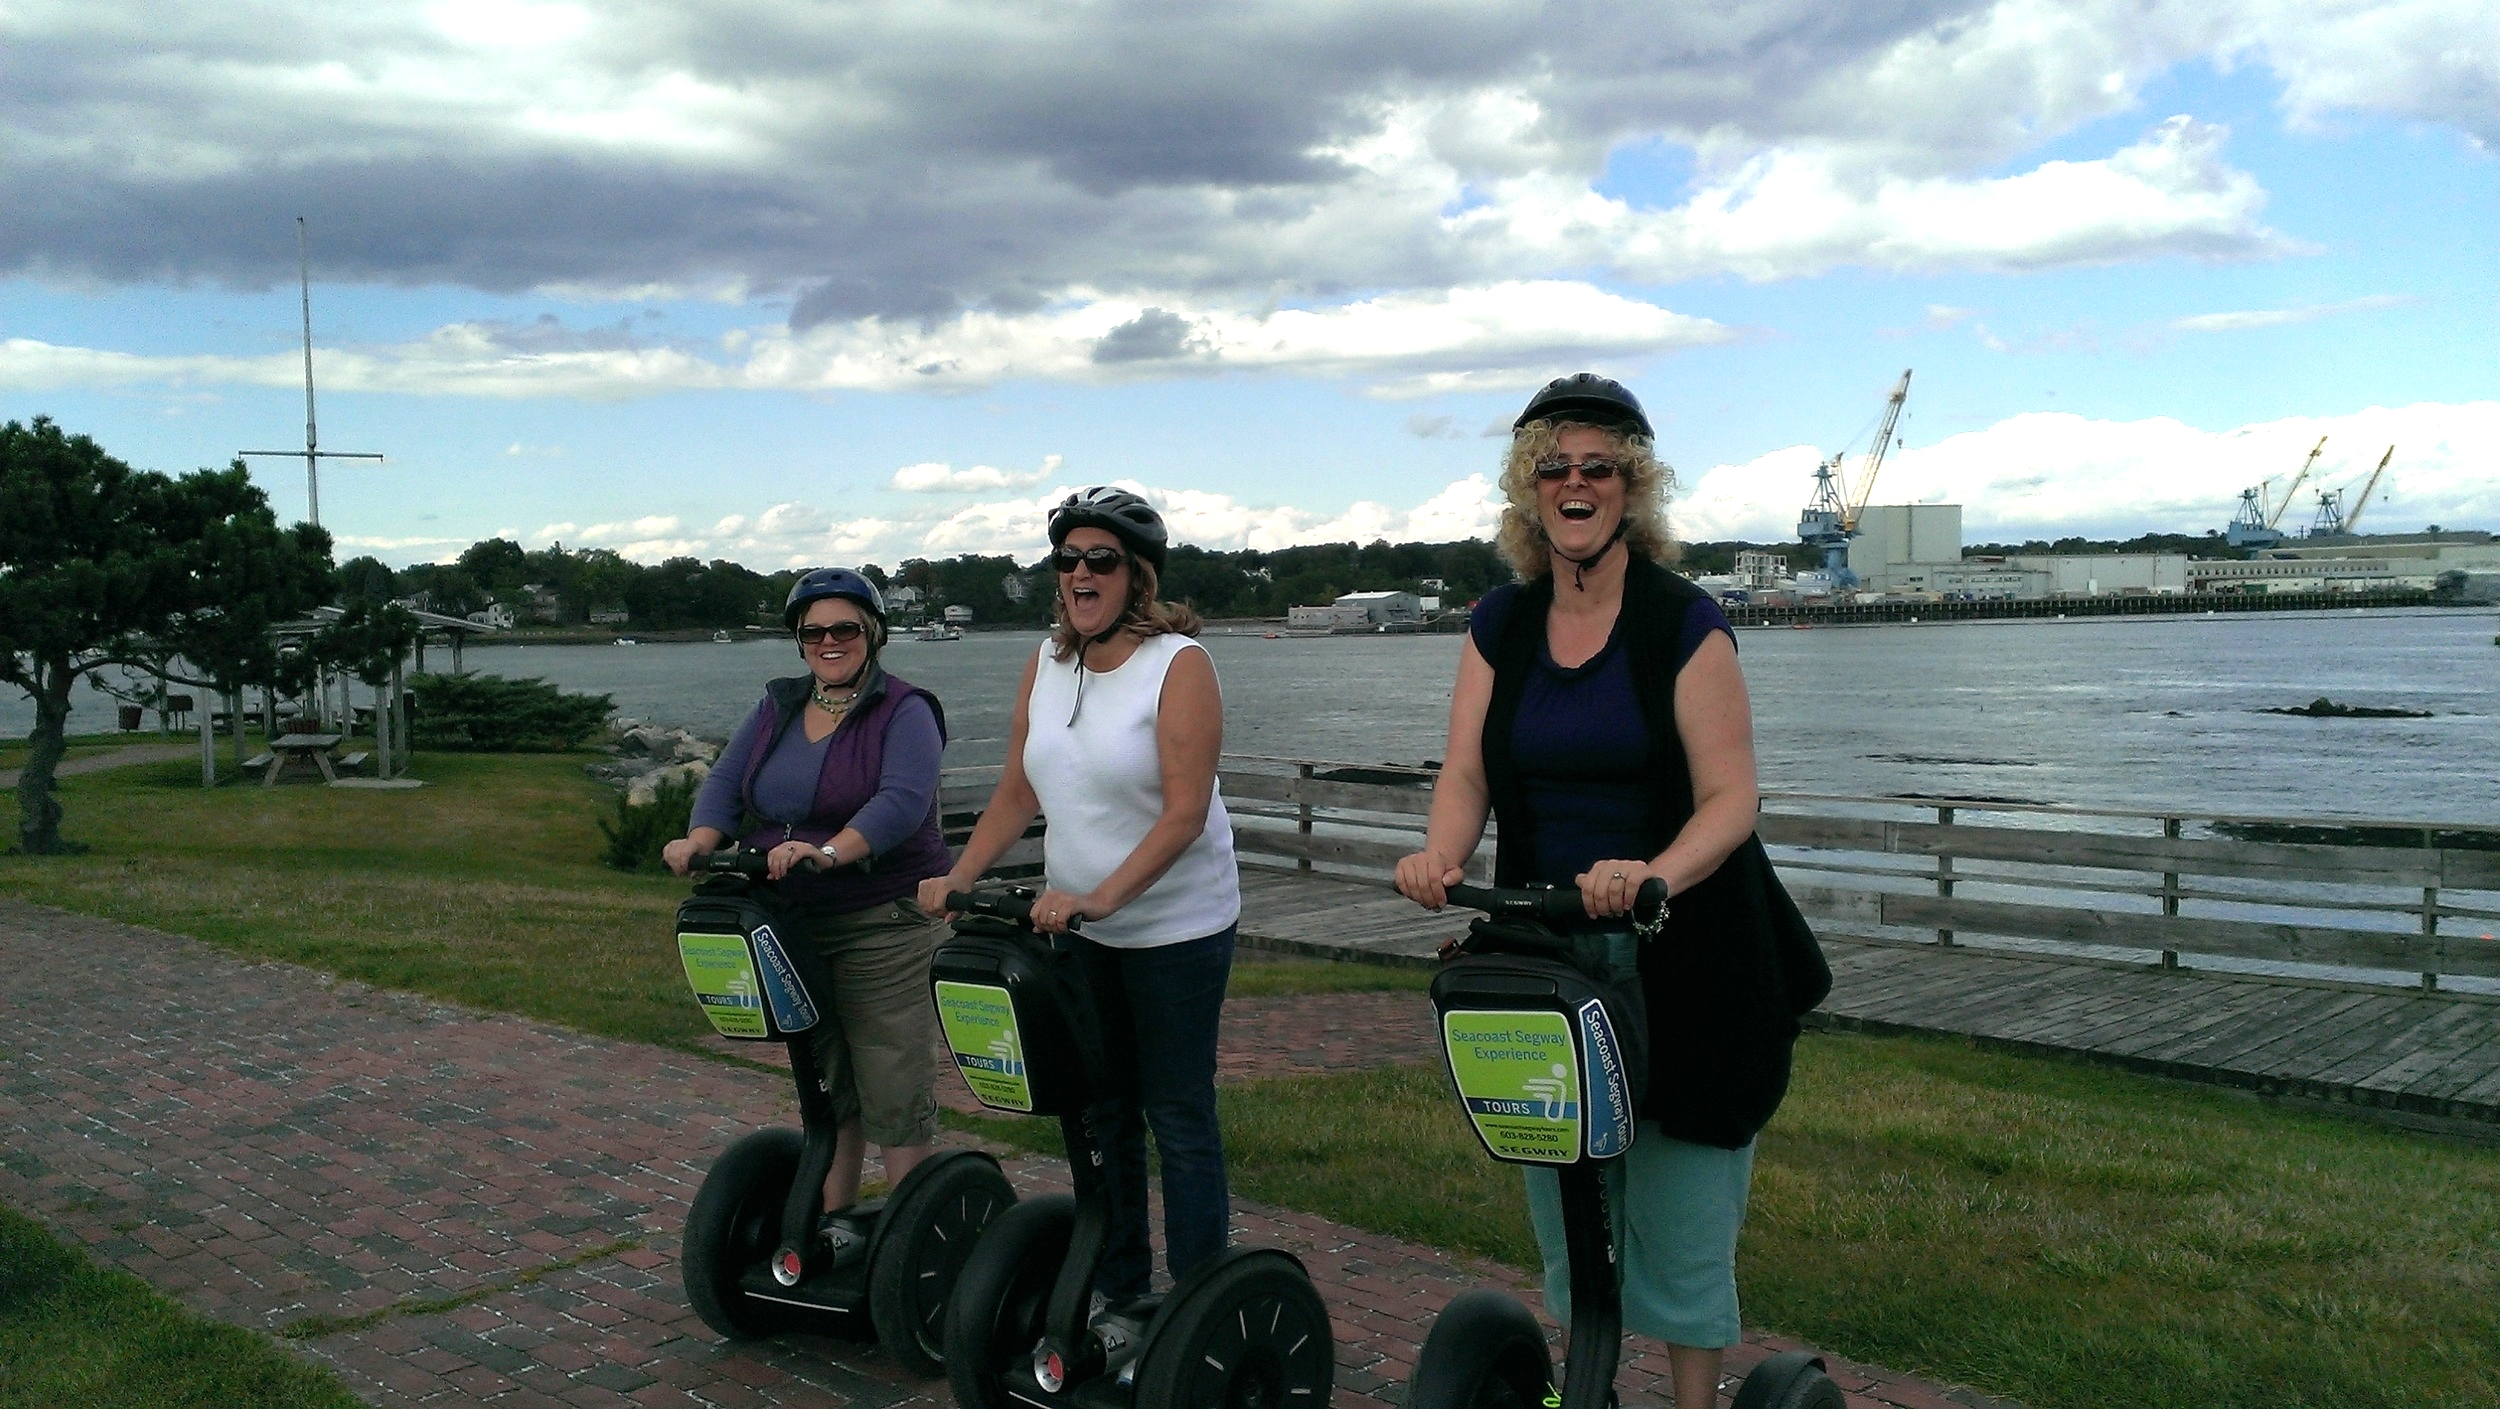 Our Segway conflict workshop in Portsmouth, New Hampshire. it was a blast!